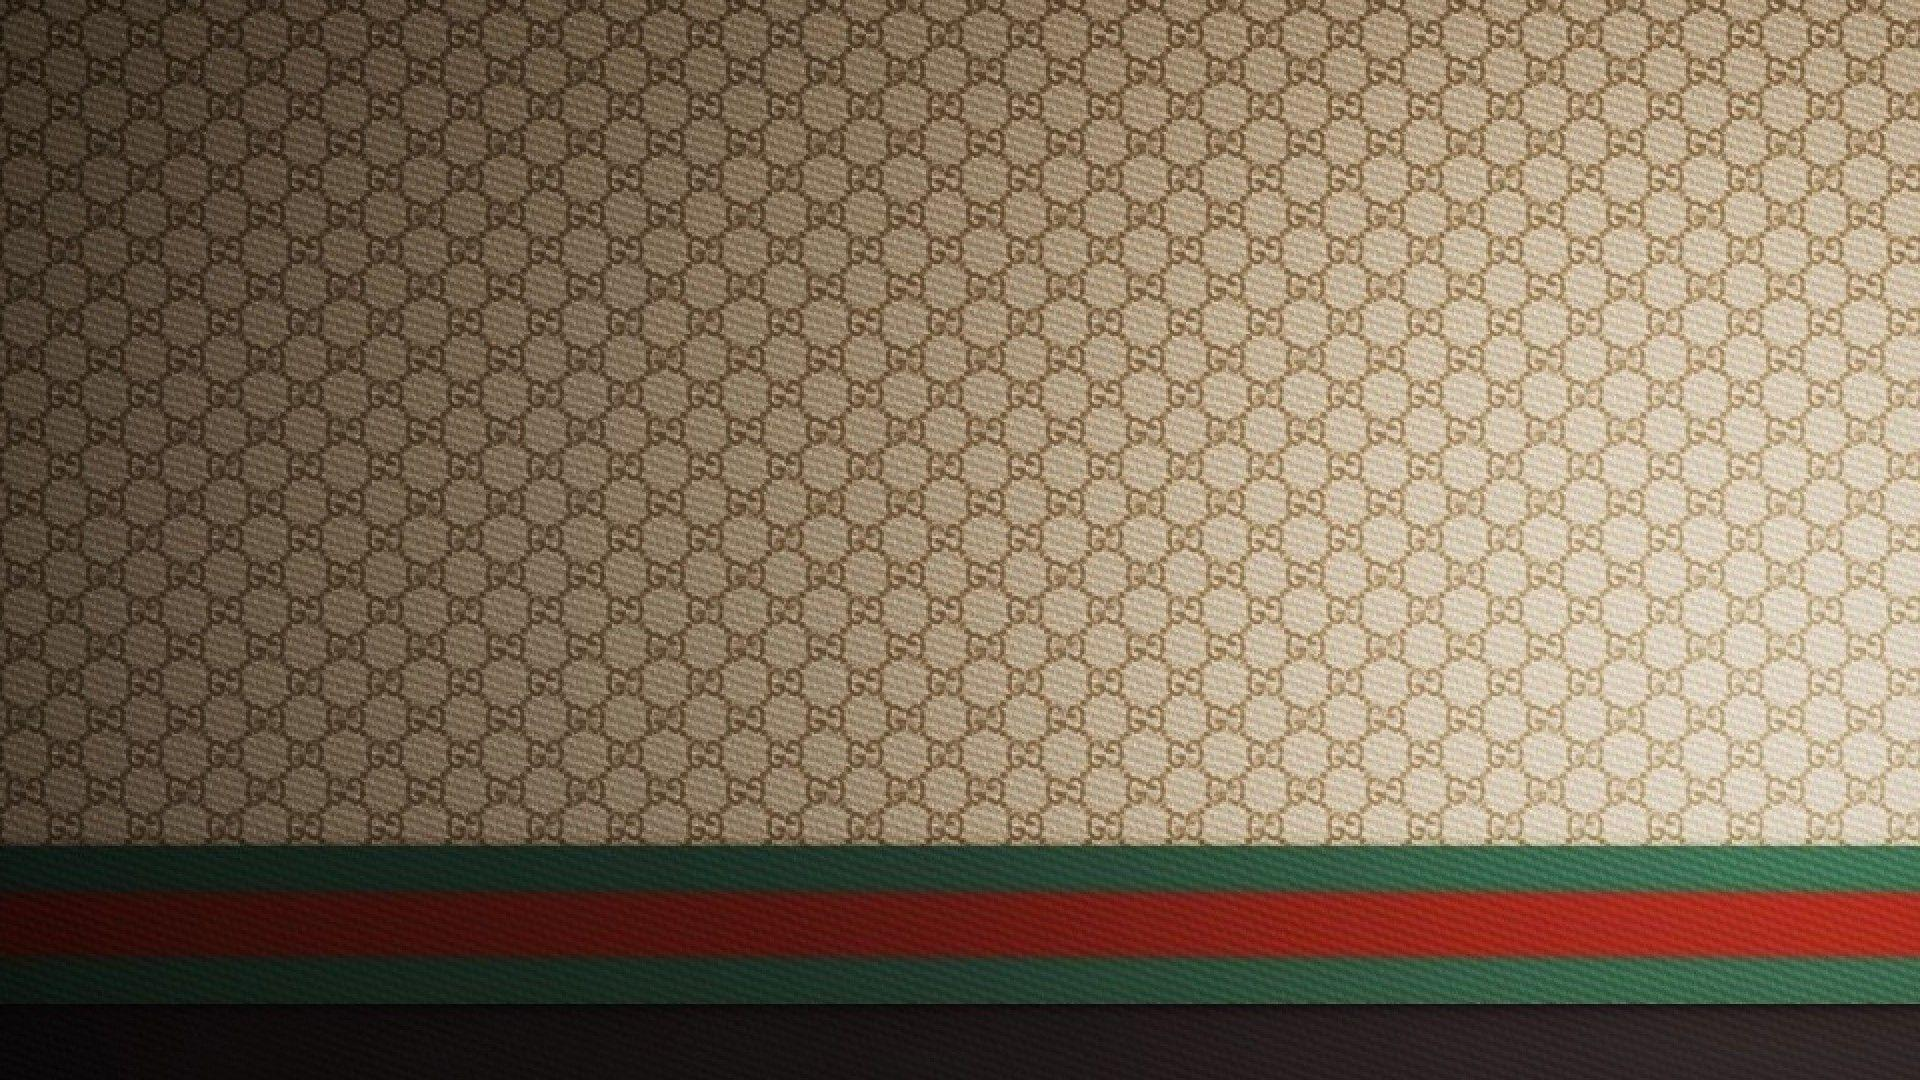 Gucci Wallpapers - Wallpaper Cave